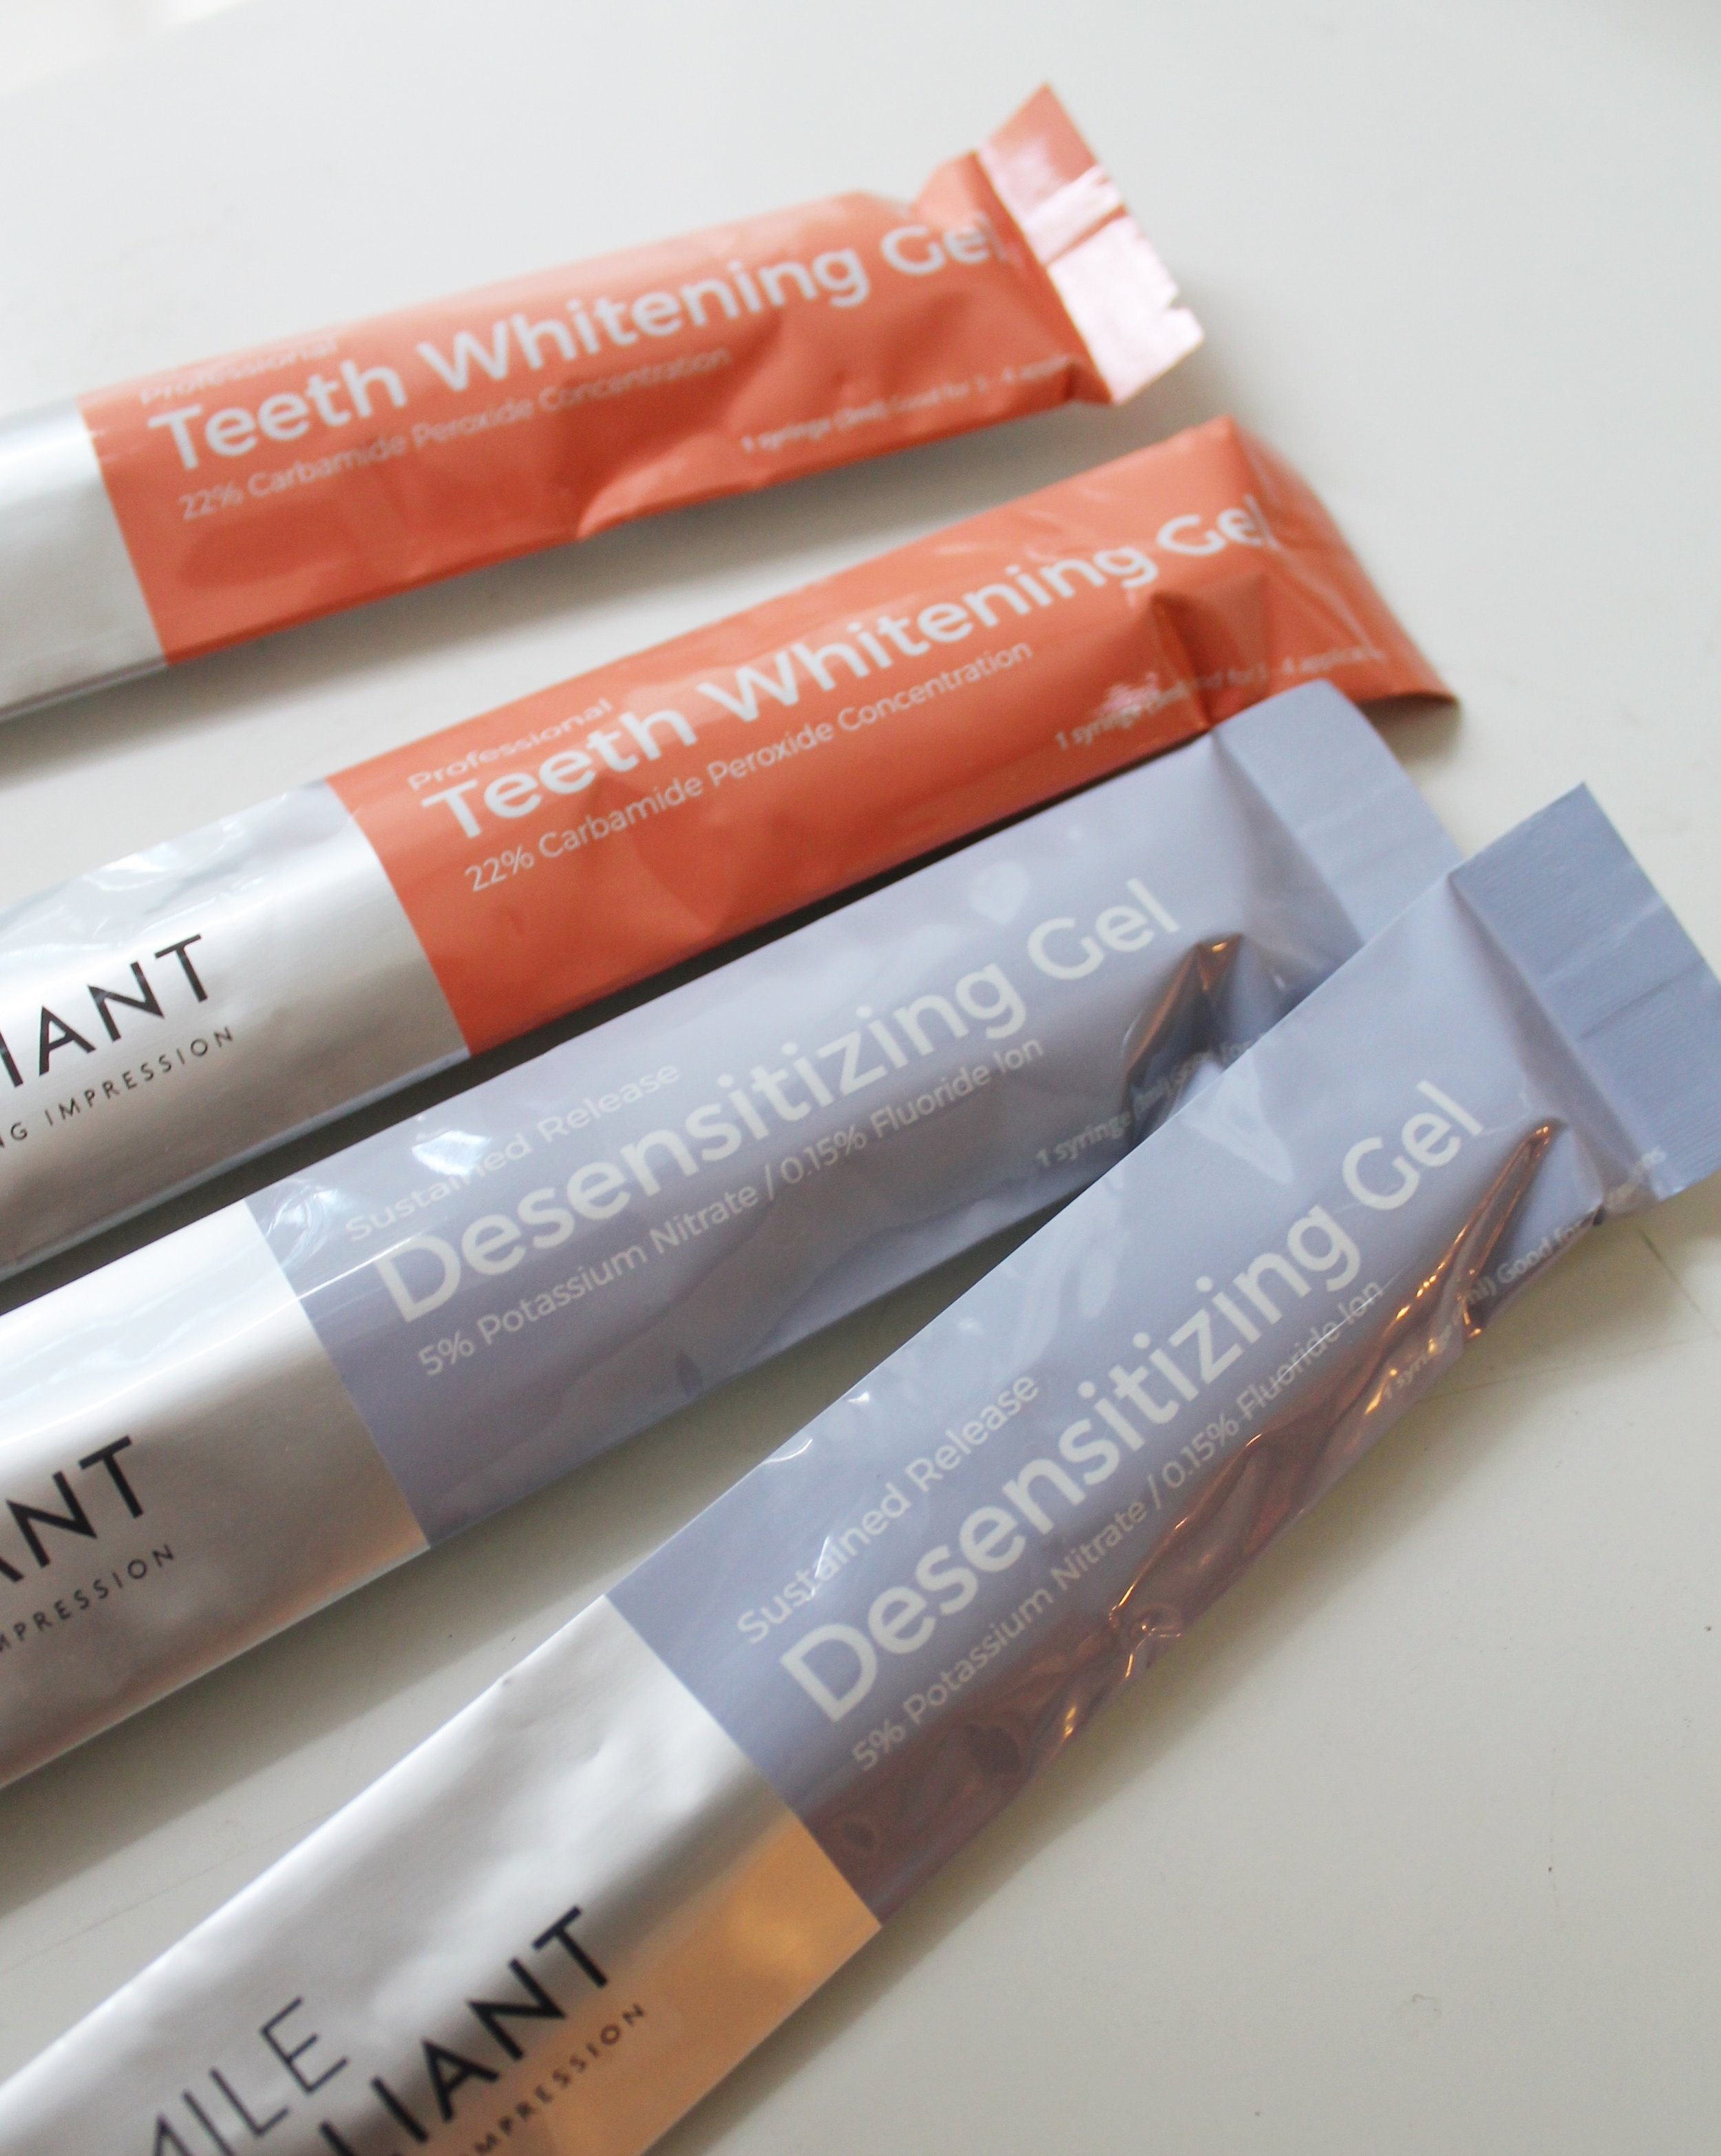 Teeth whitening gel and desensitizing gel to add to customized trays